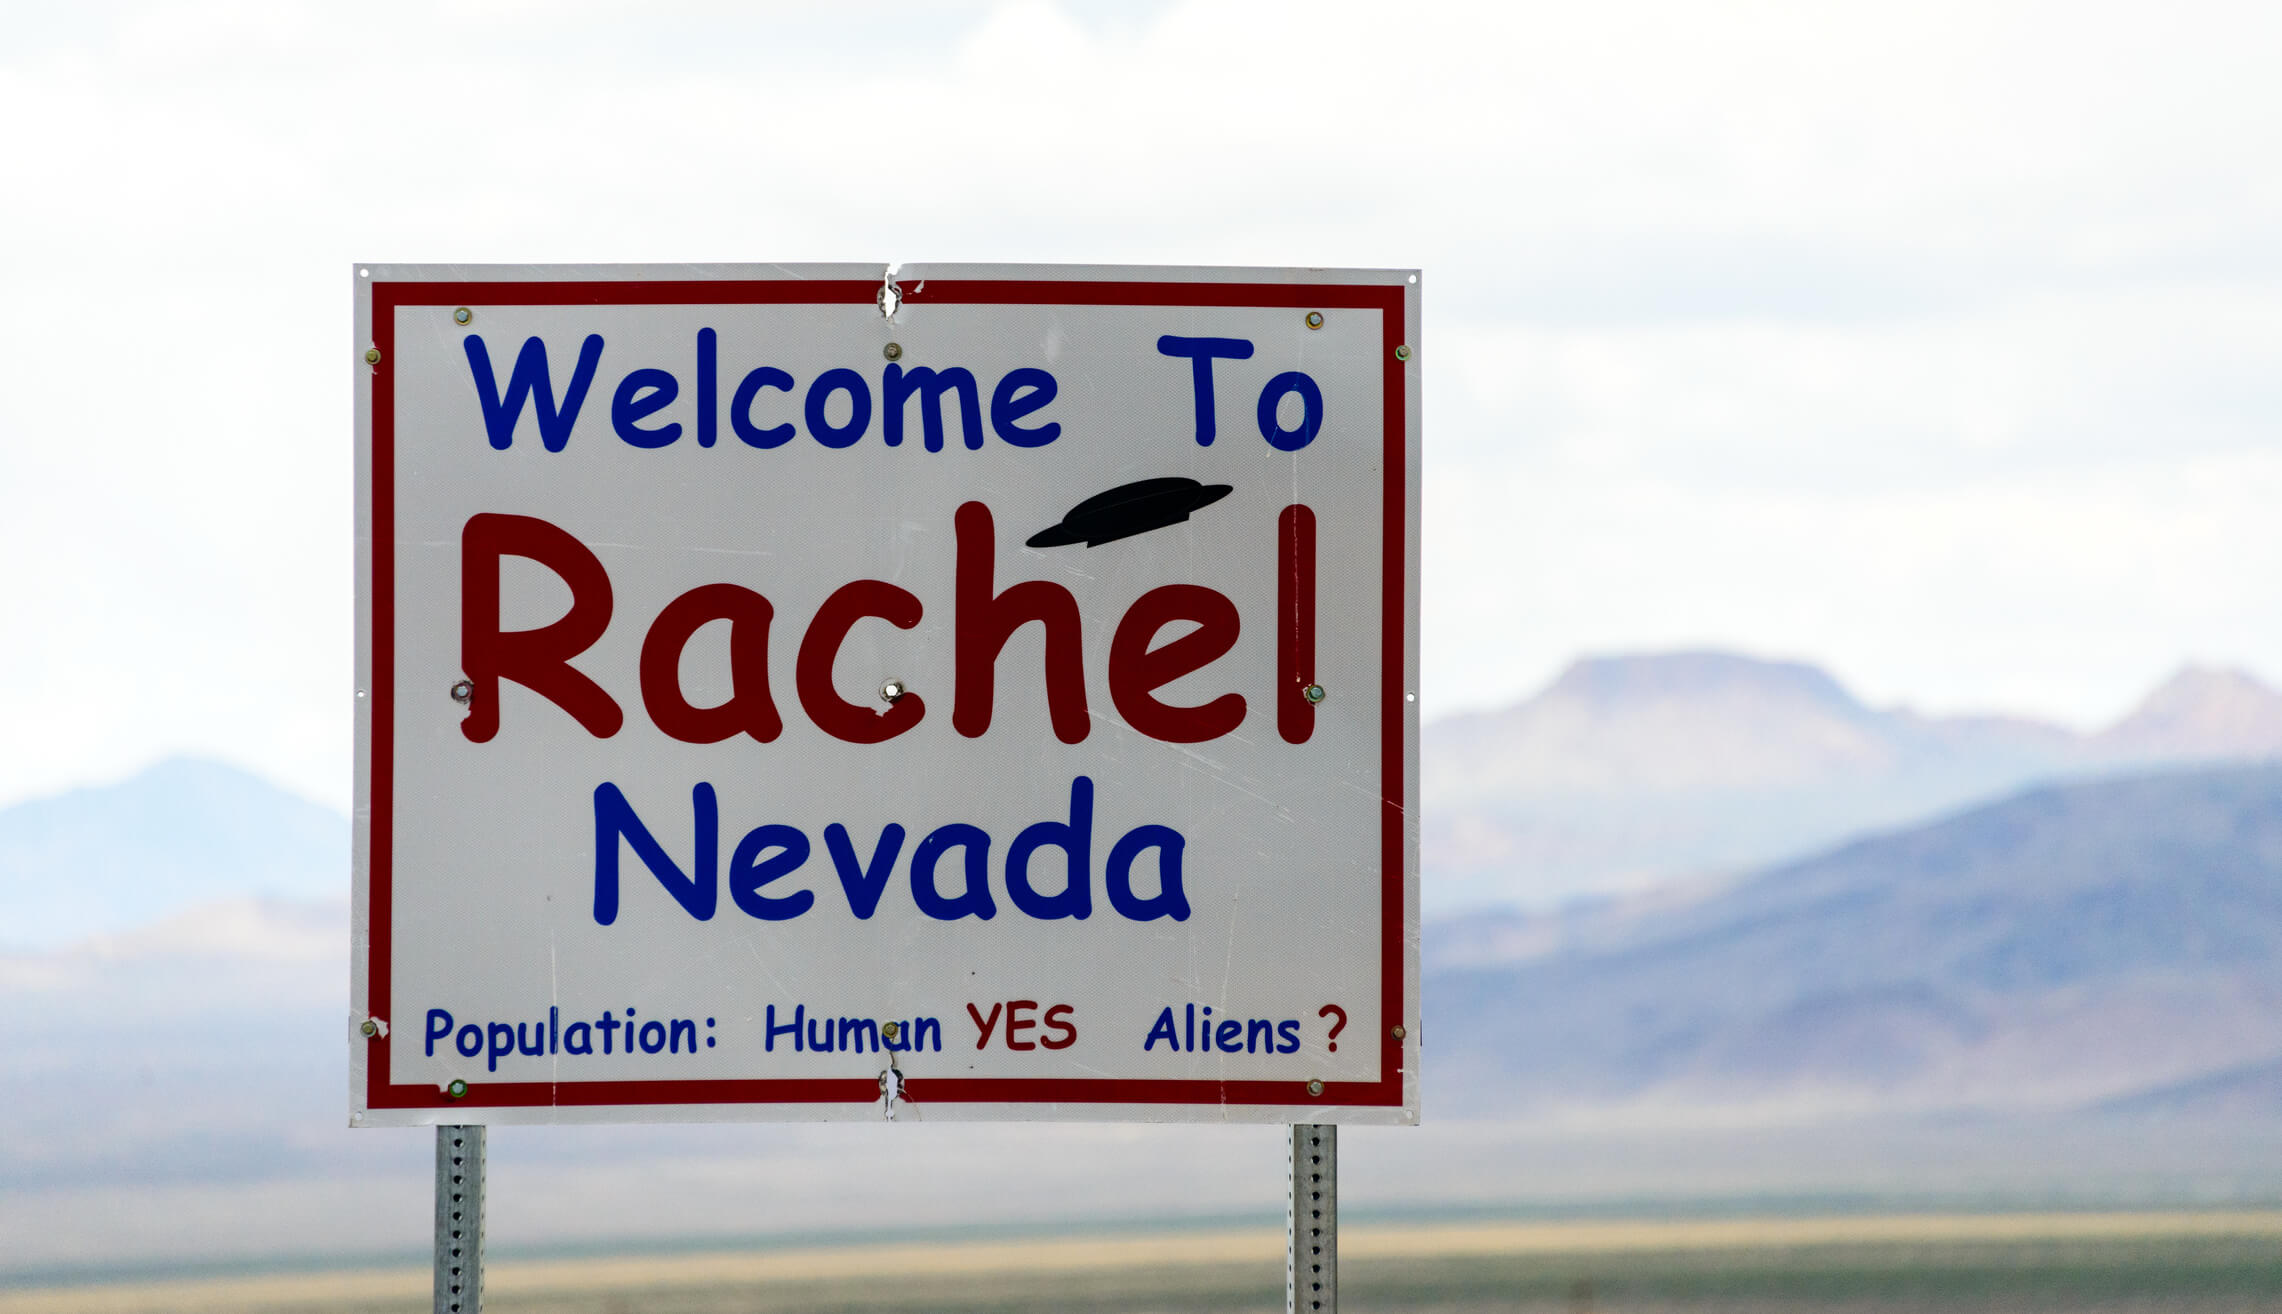 Grab your alien bayonet, we're rushing Area 51 zrfphoto/Getty Images